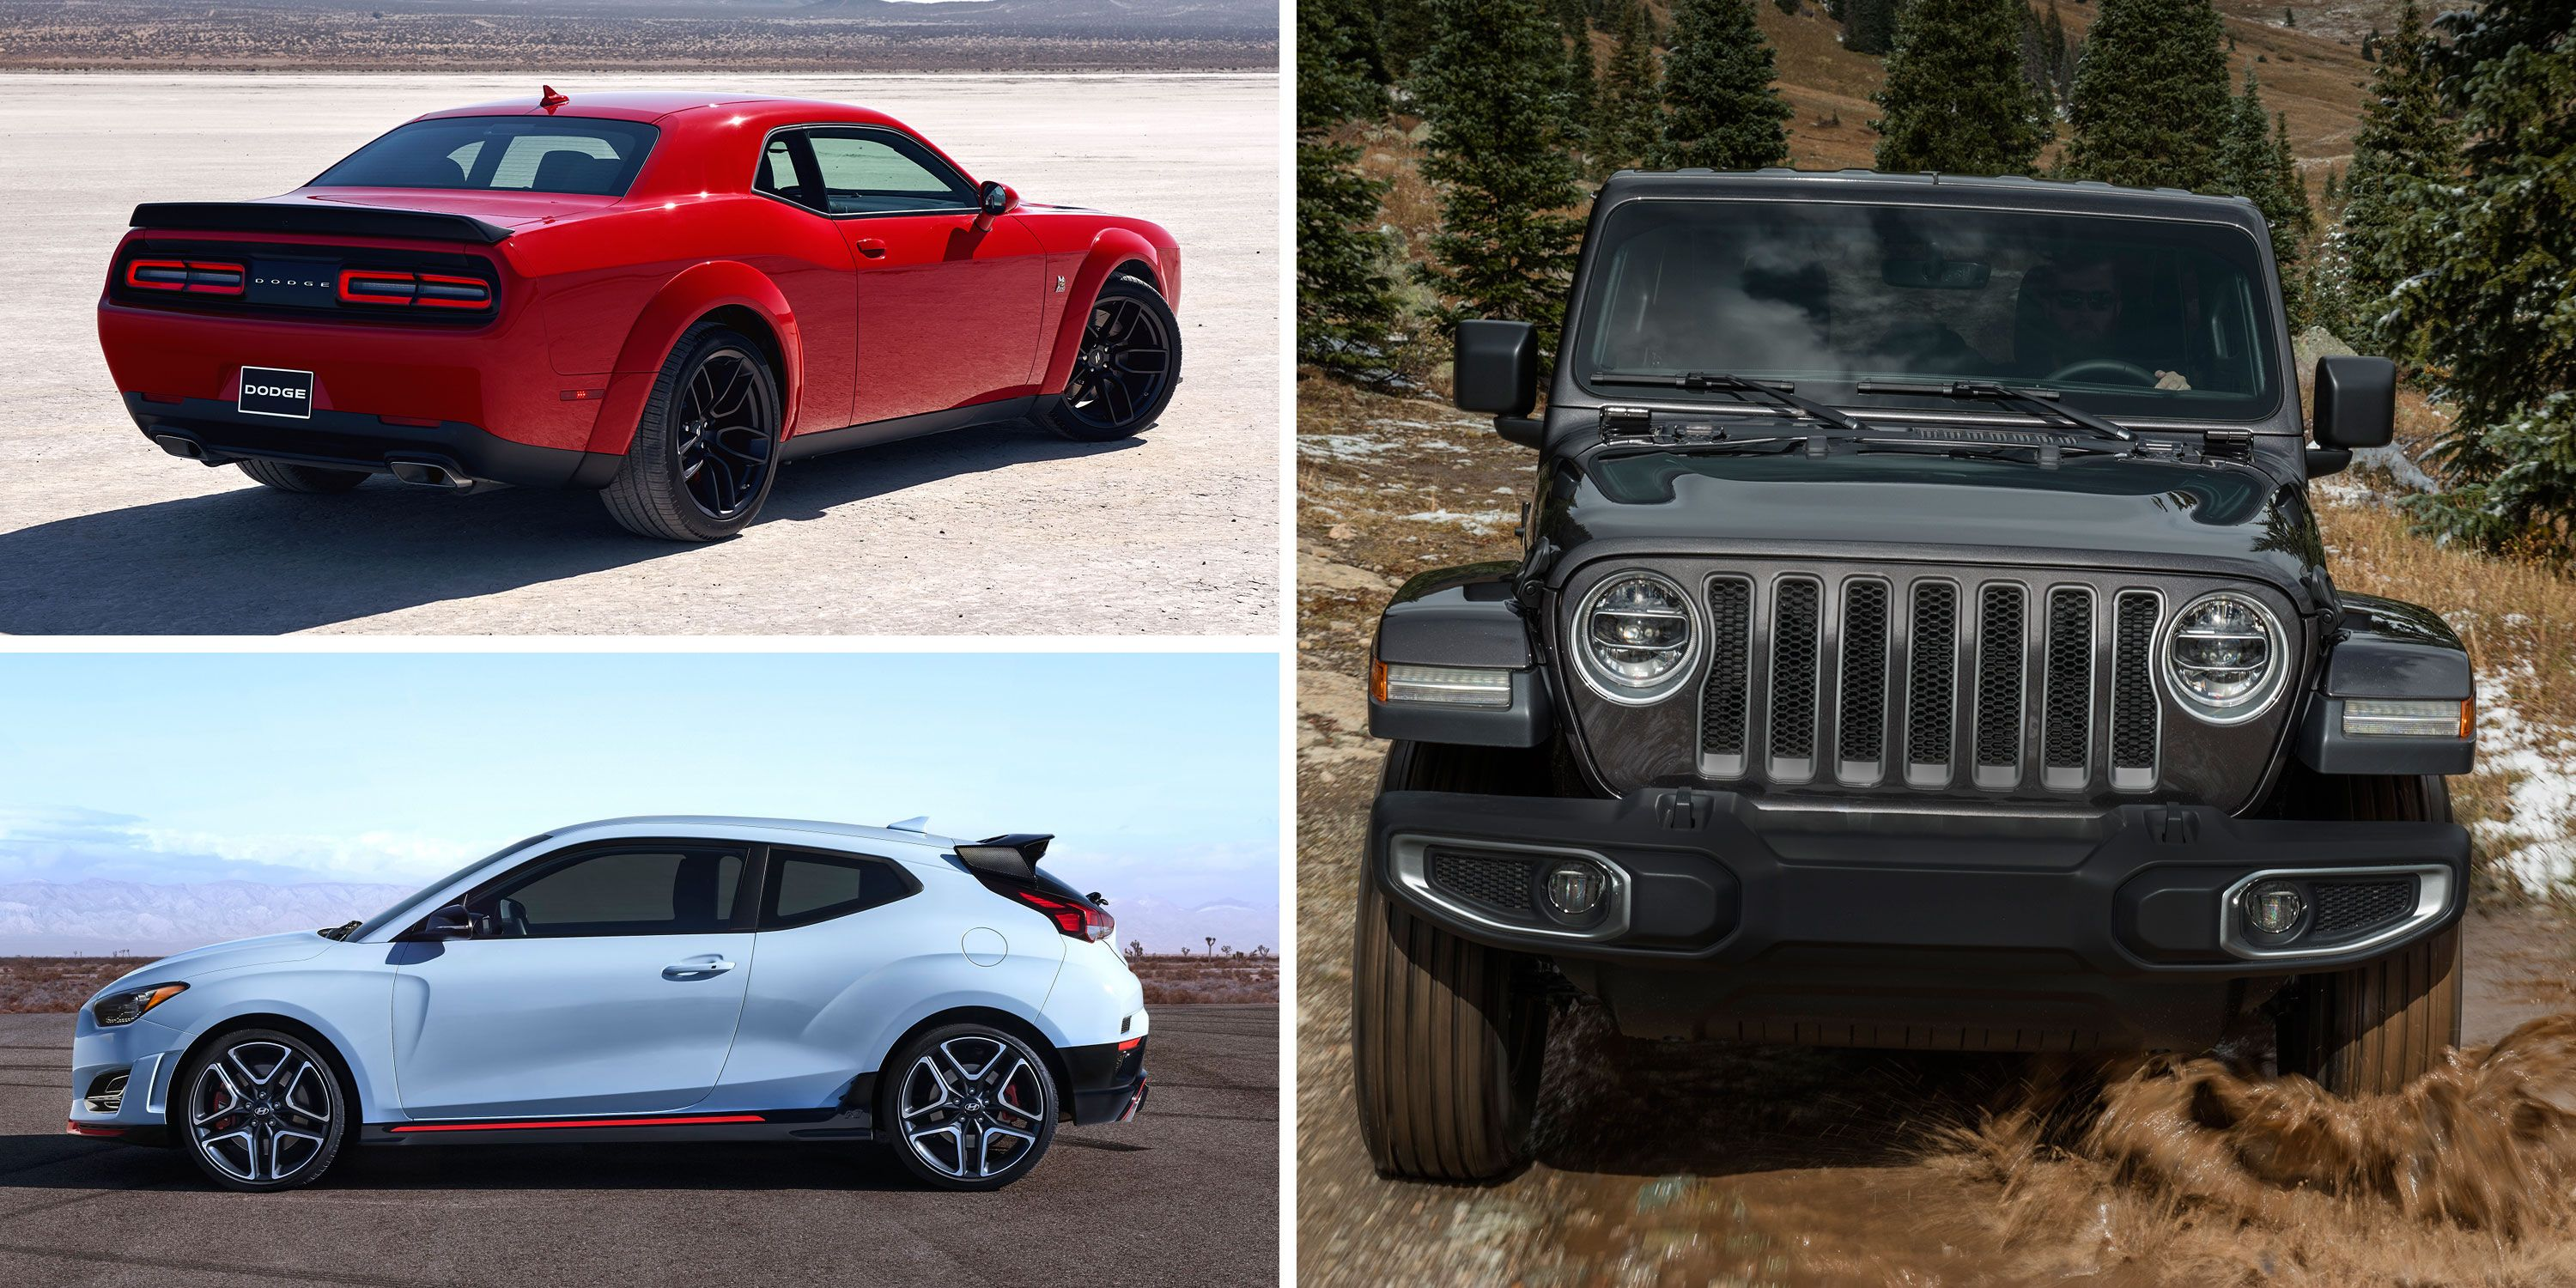 The 20 Best Affordable Performance Cars (and Trucks and SUVs!) You Can Buy